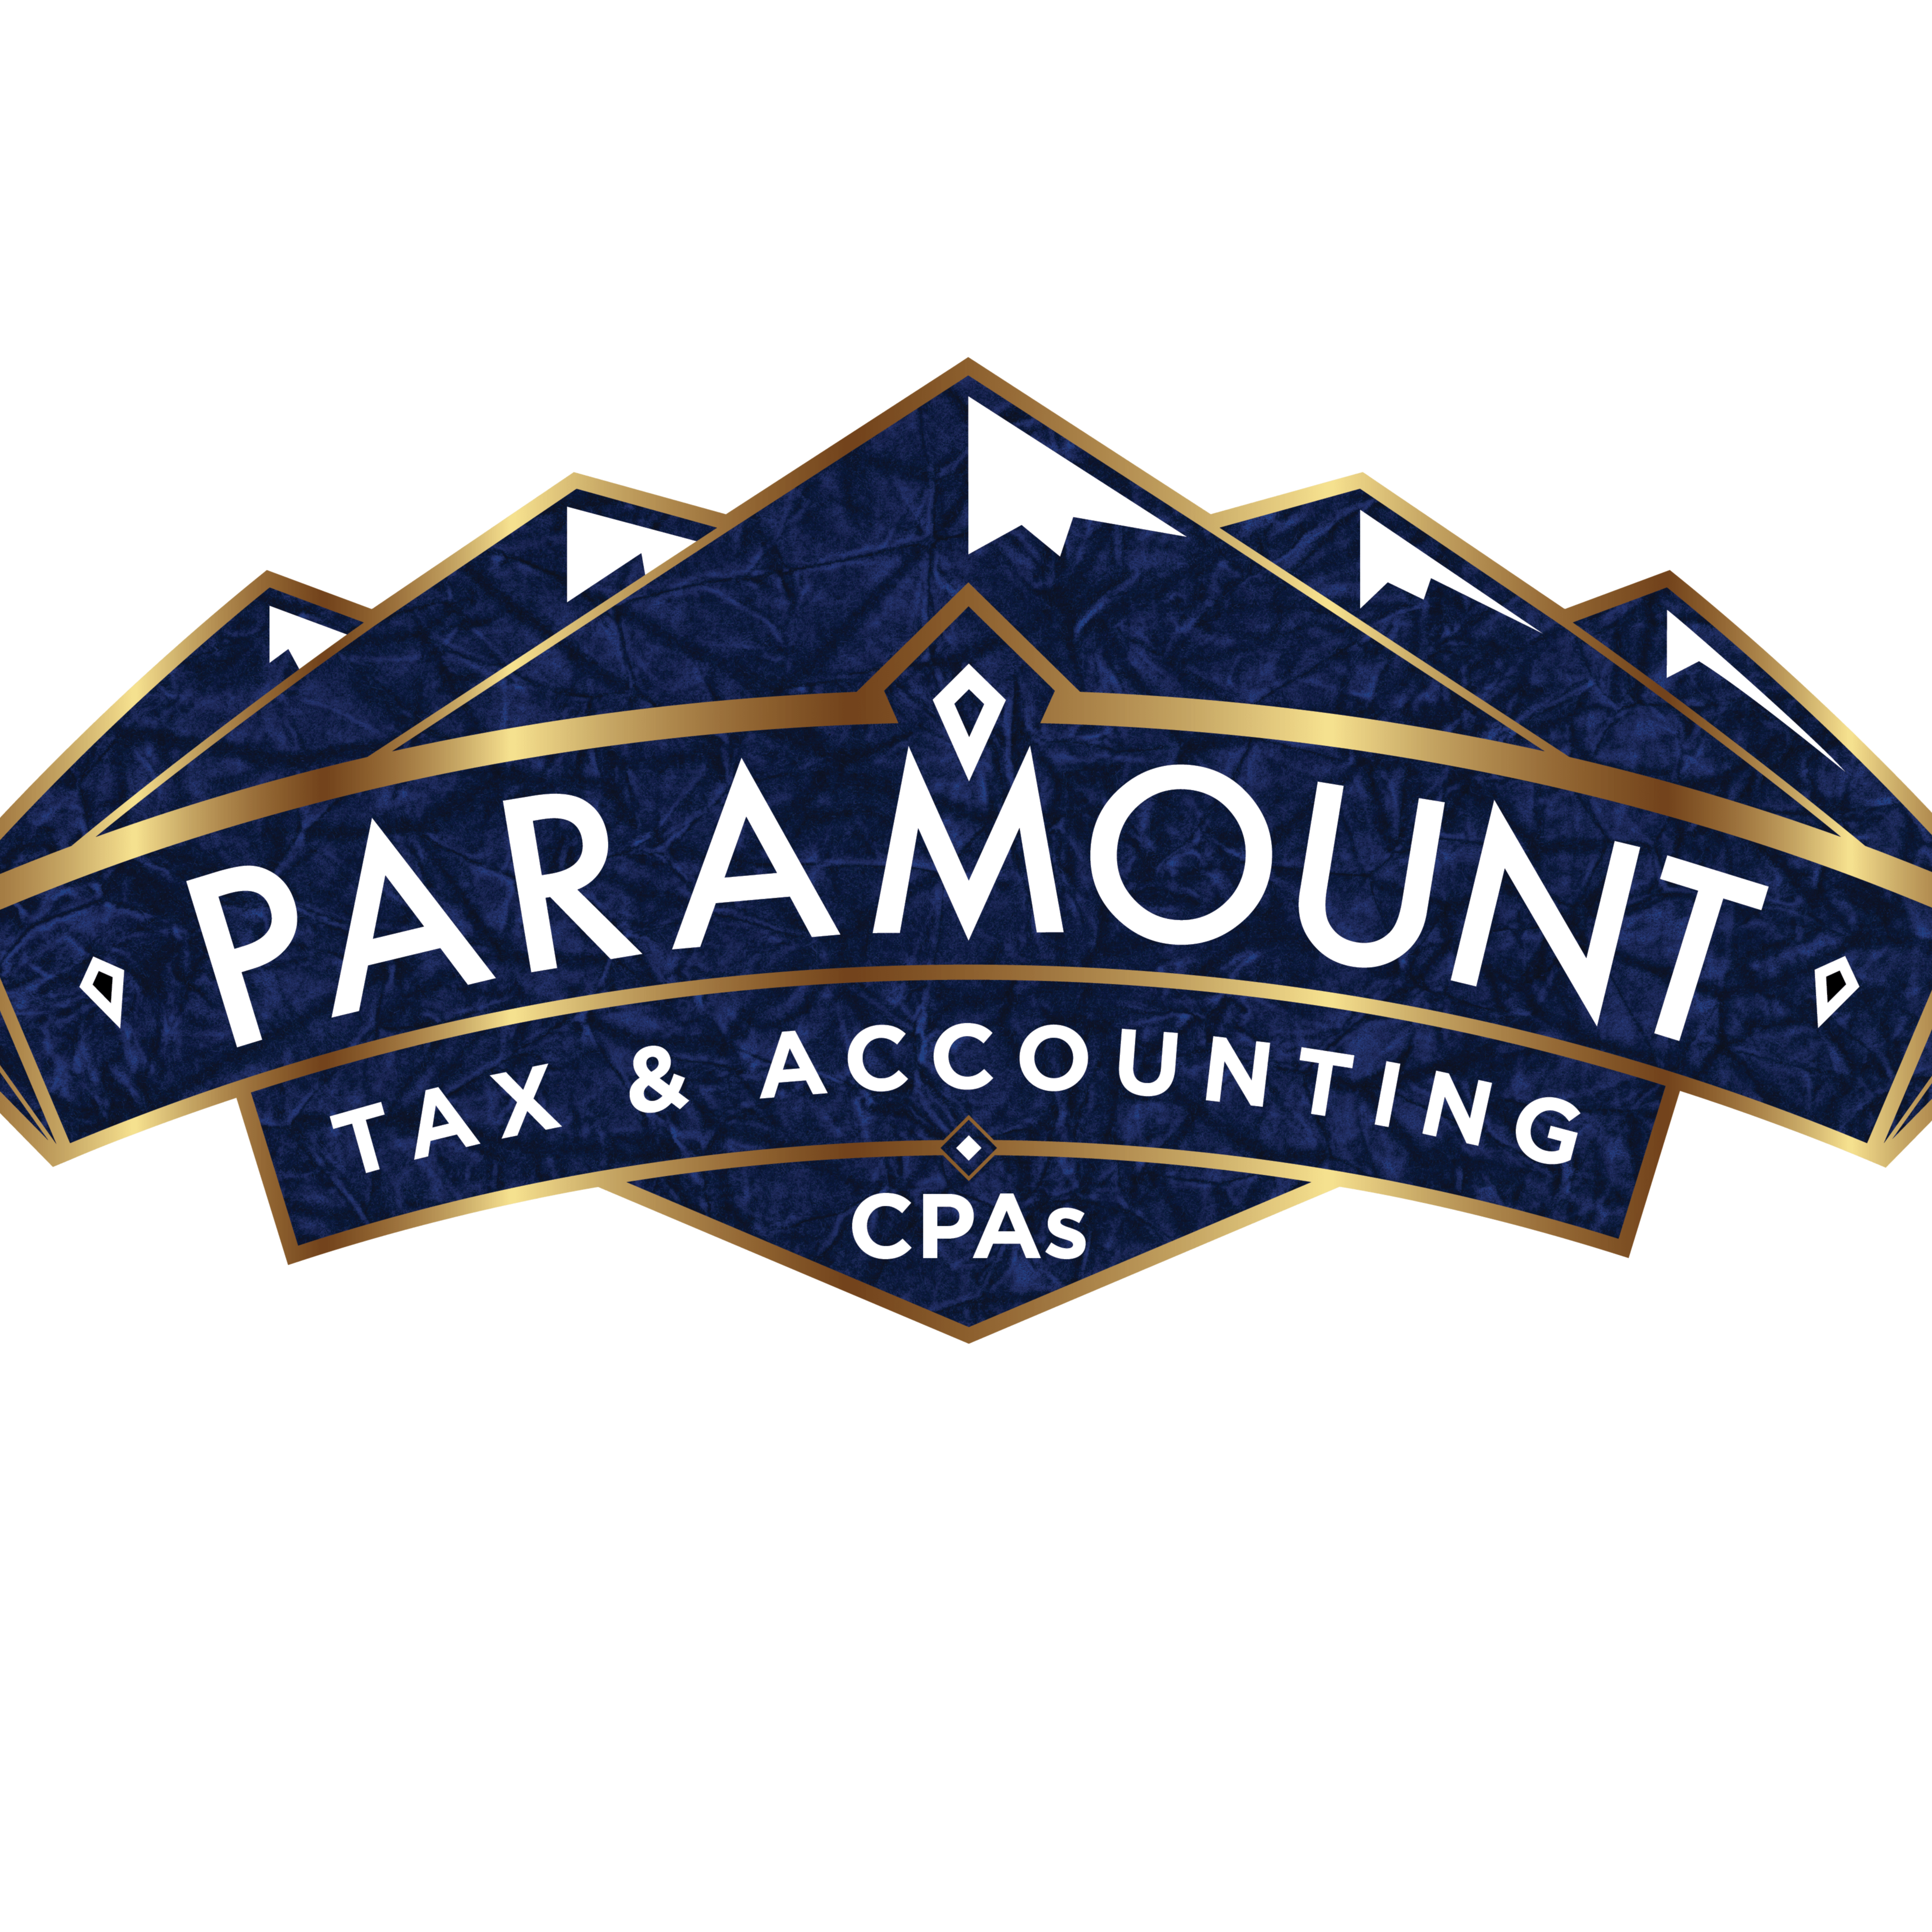 Paramount Tax & Accounting - Lehi